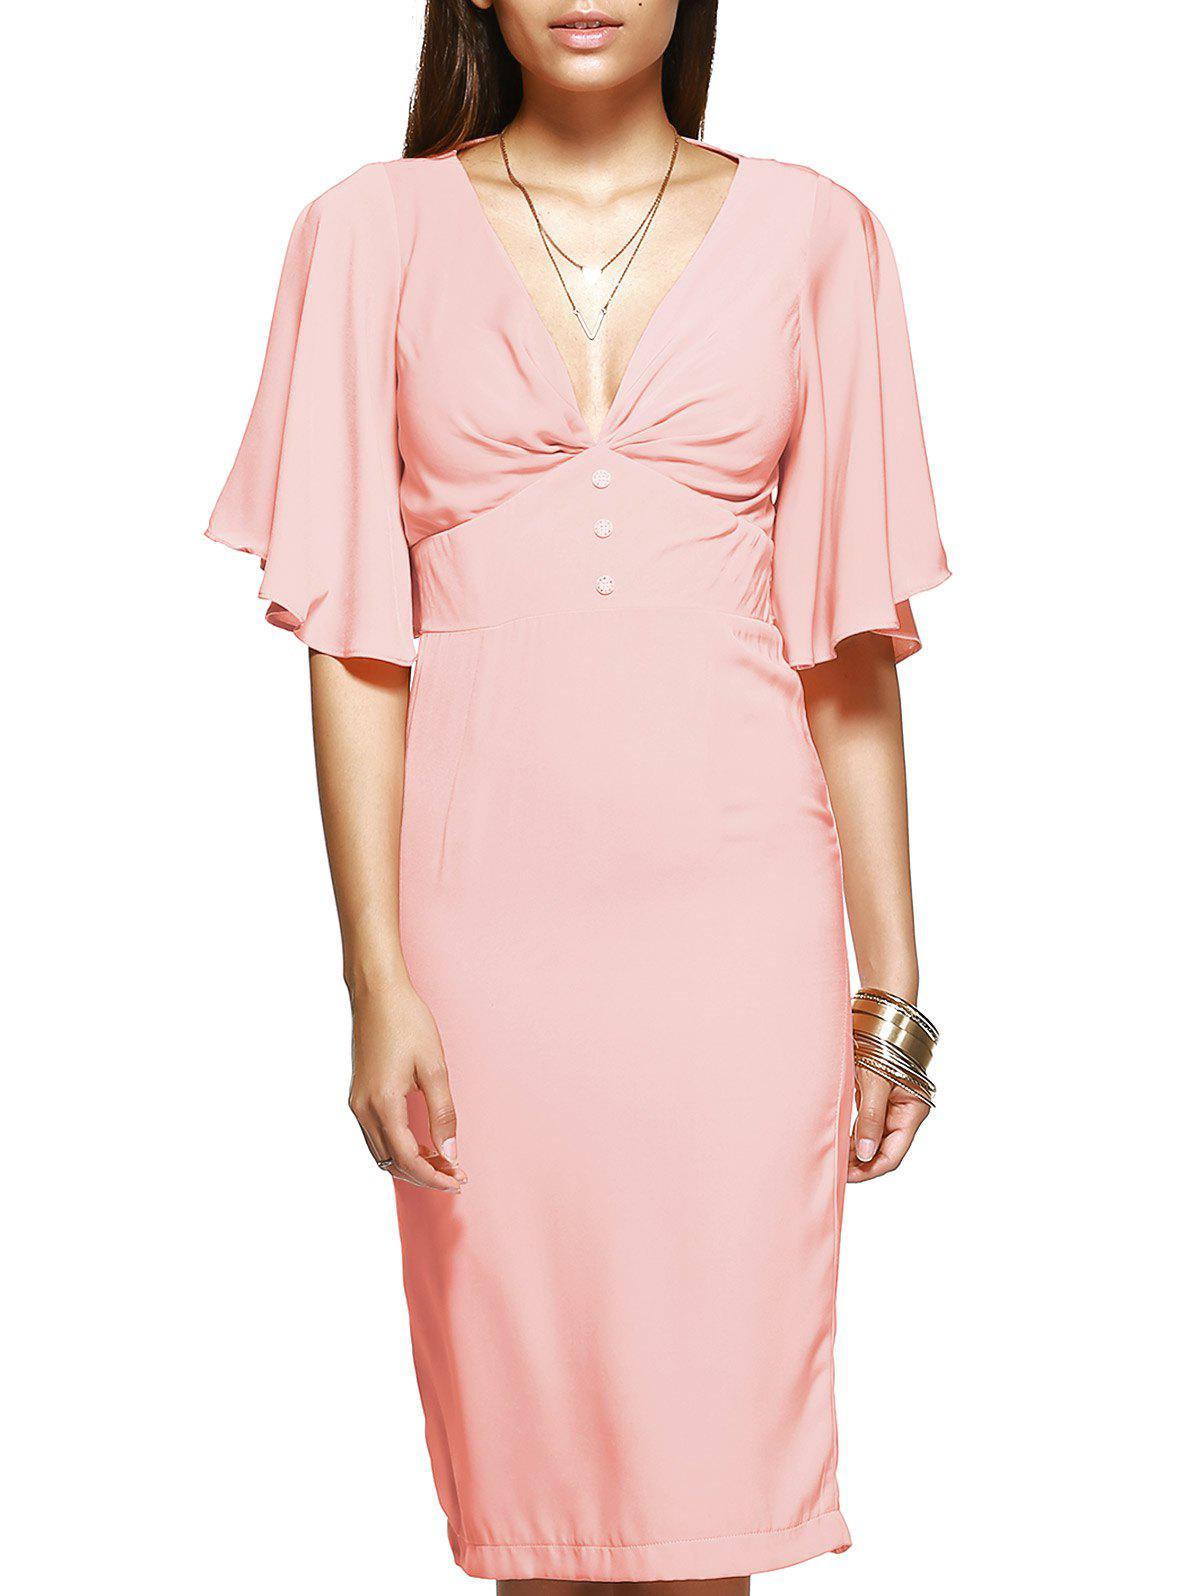 Elegant Women's Pink Flounced Sleeves Open Back Dress - SHALLOW PINK XL